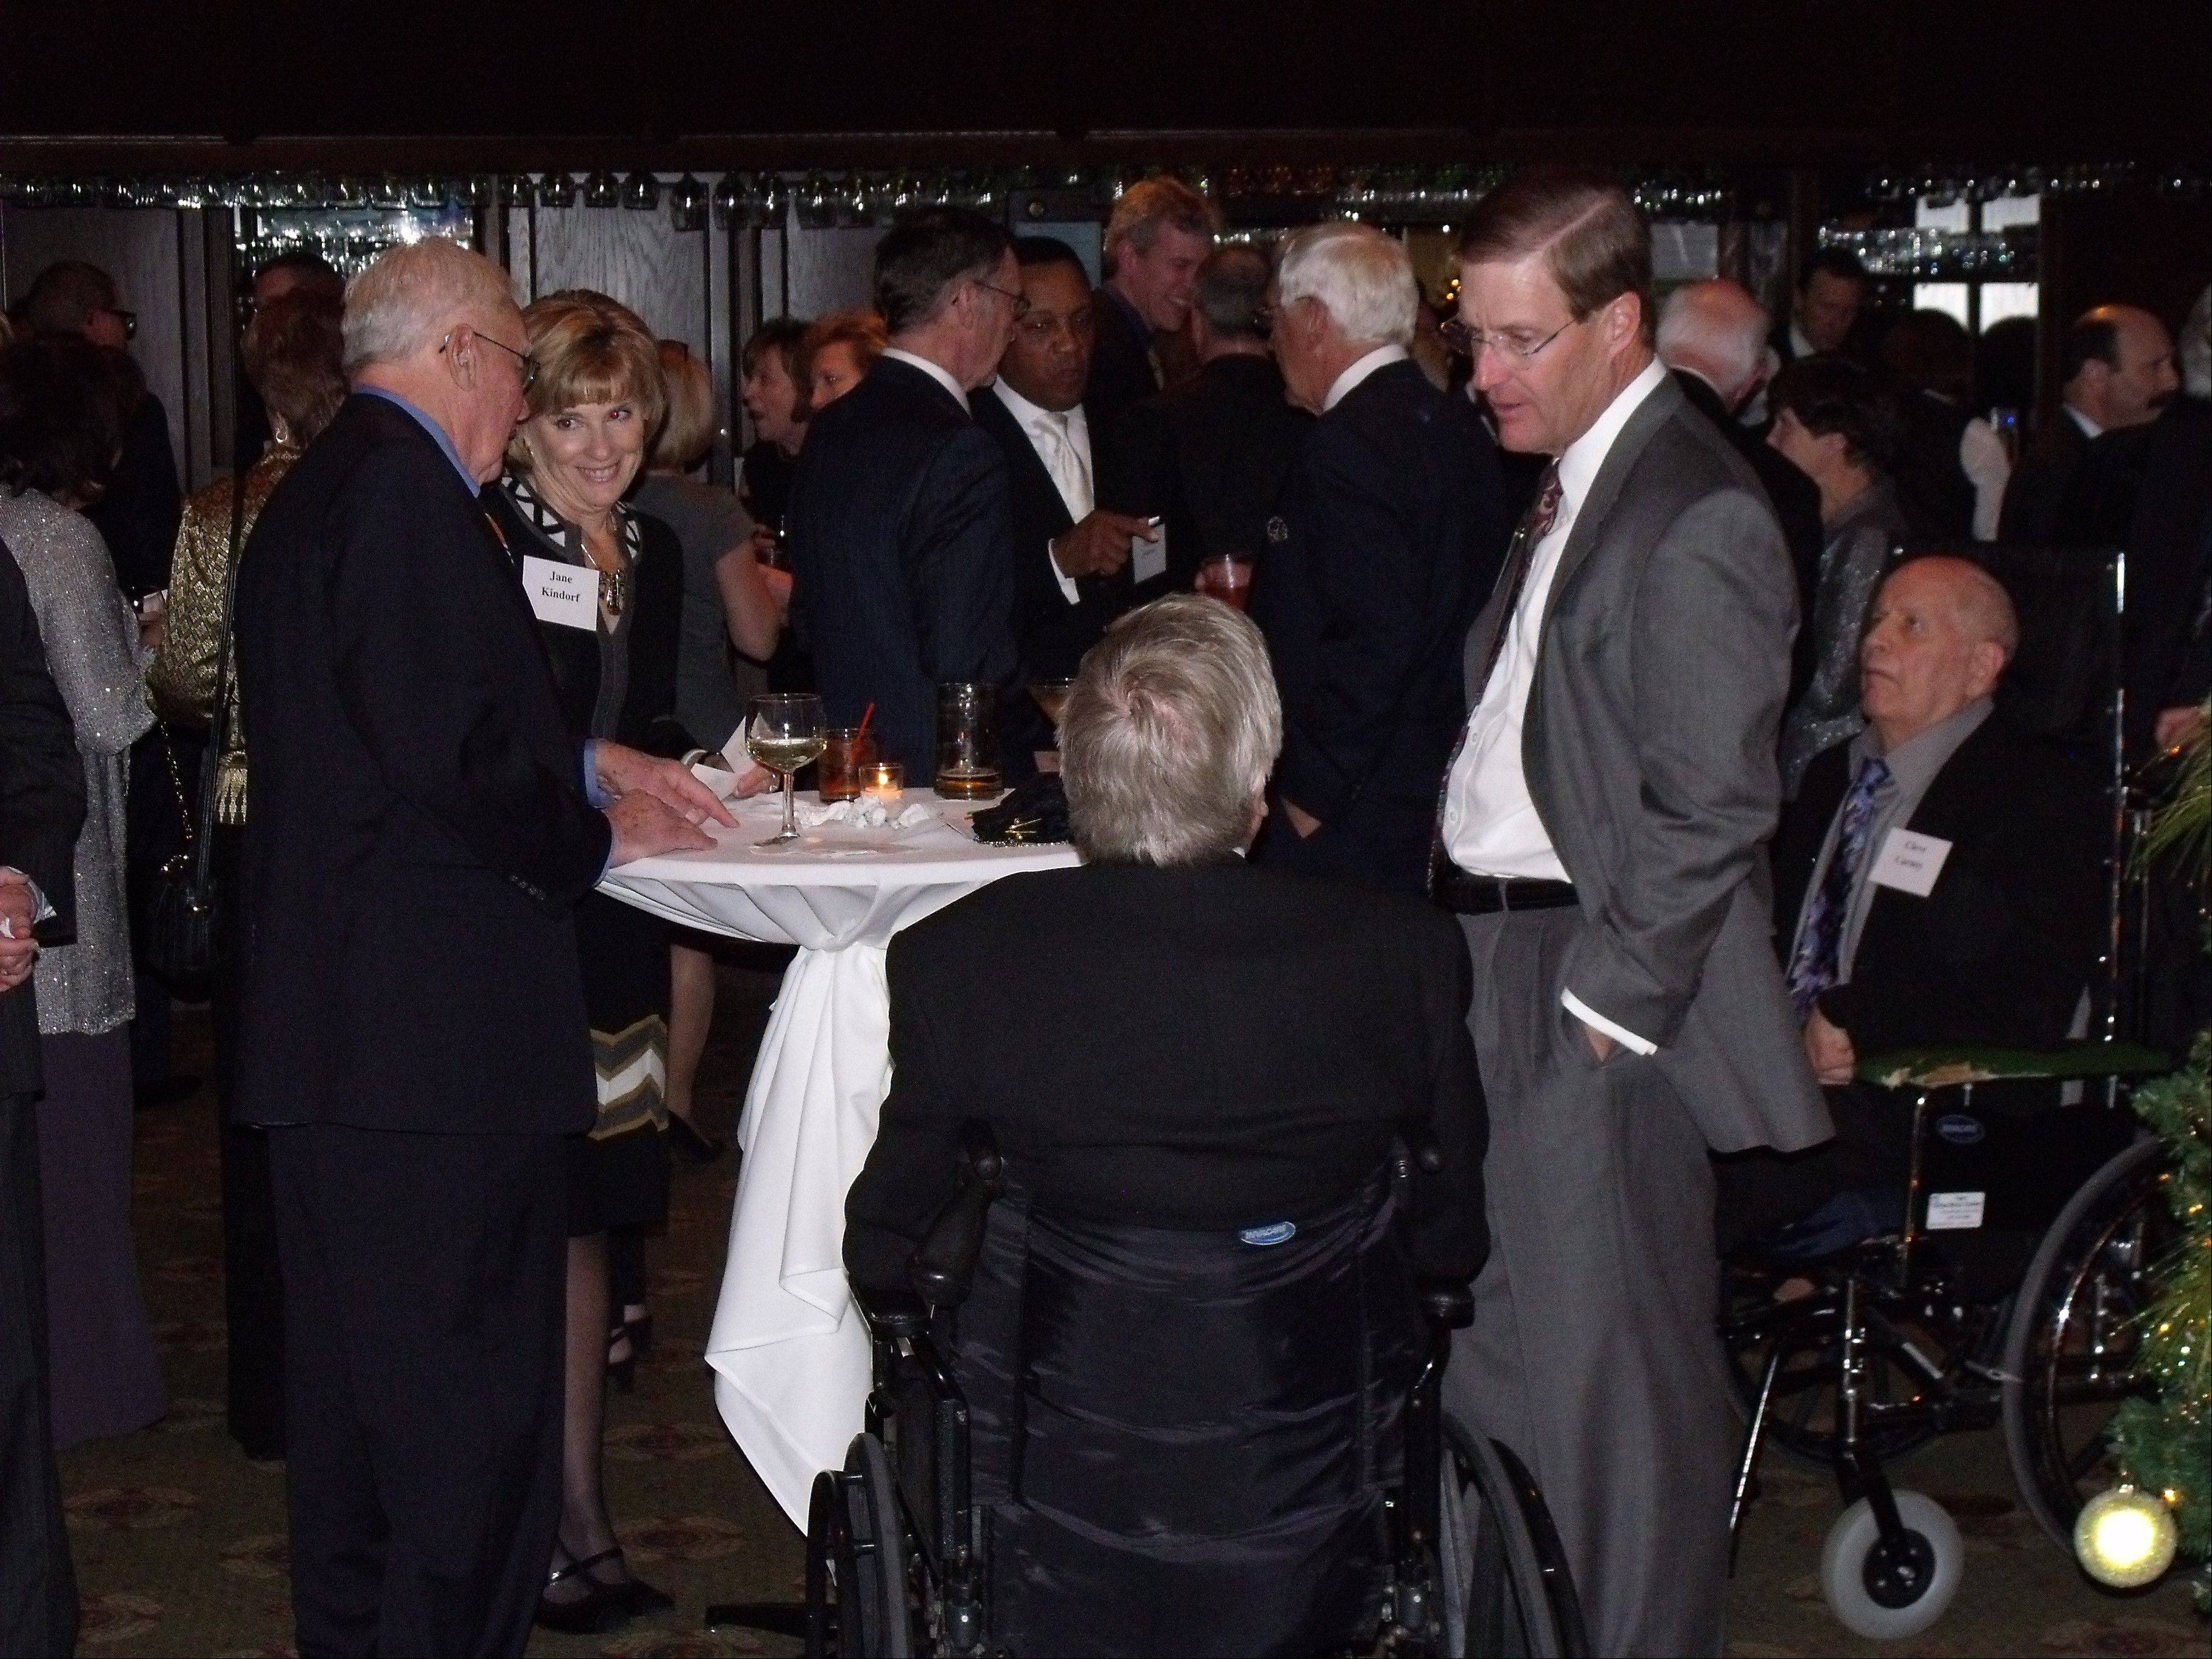 The DuPage Community Foundation's 20th annual Benefit Dinner raises money to support grants to the county's nonprofit groups.